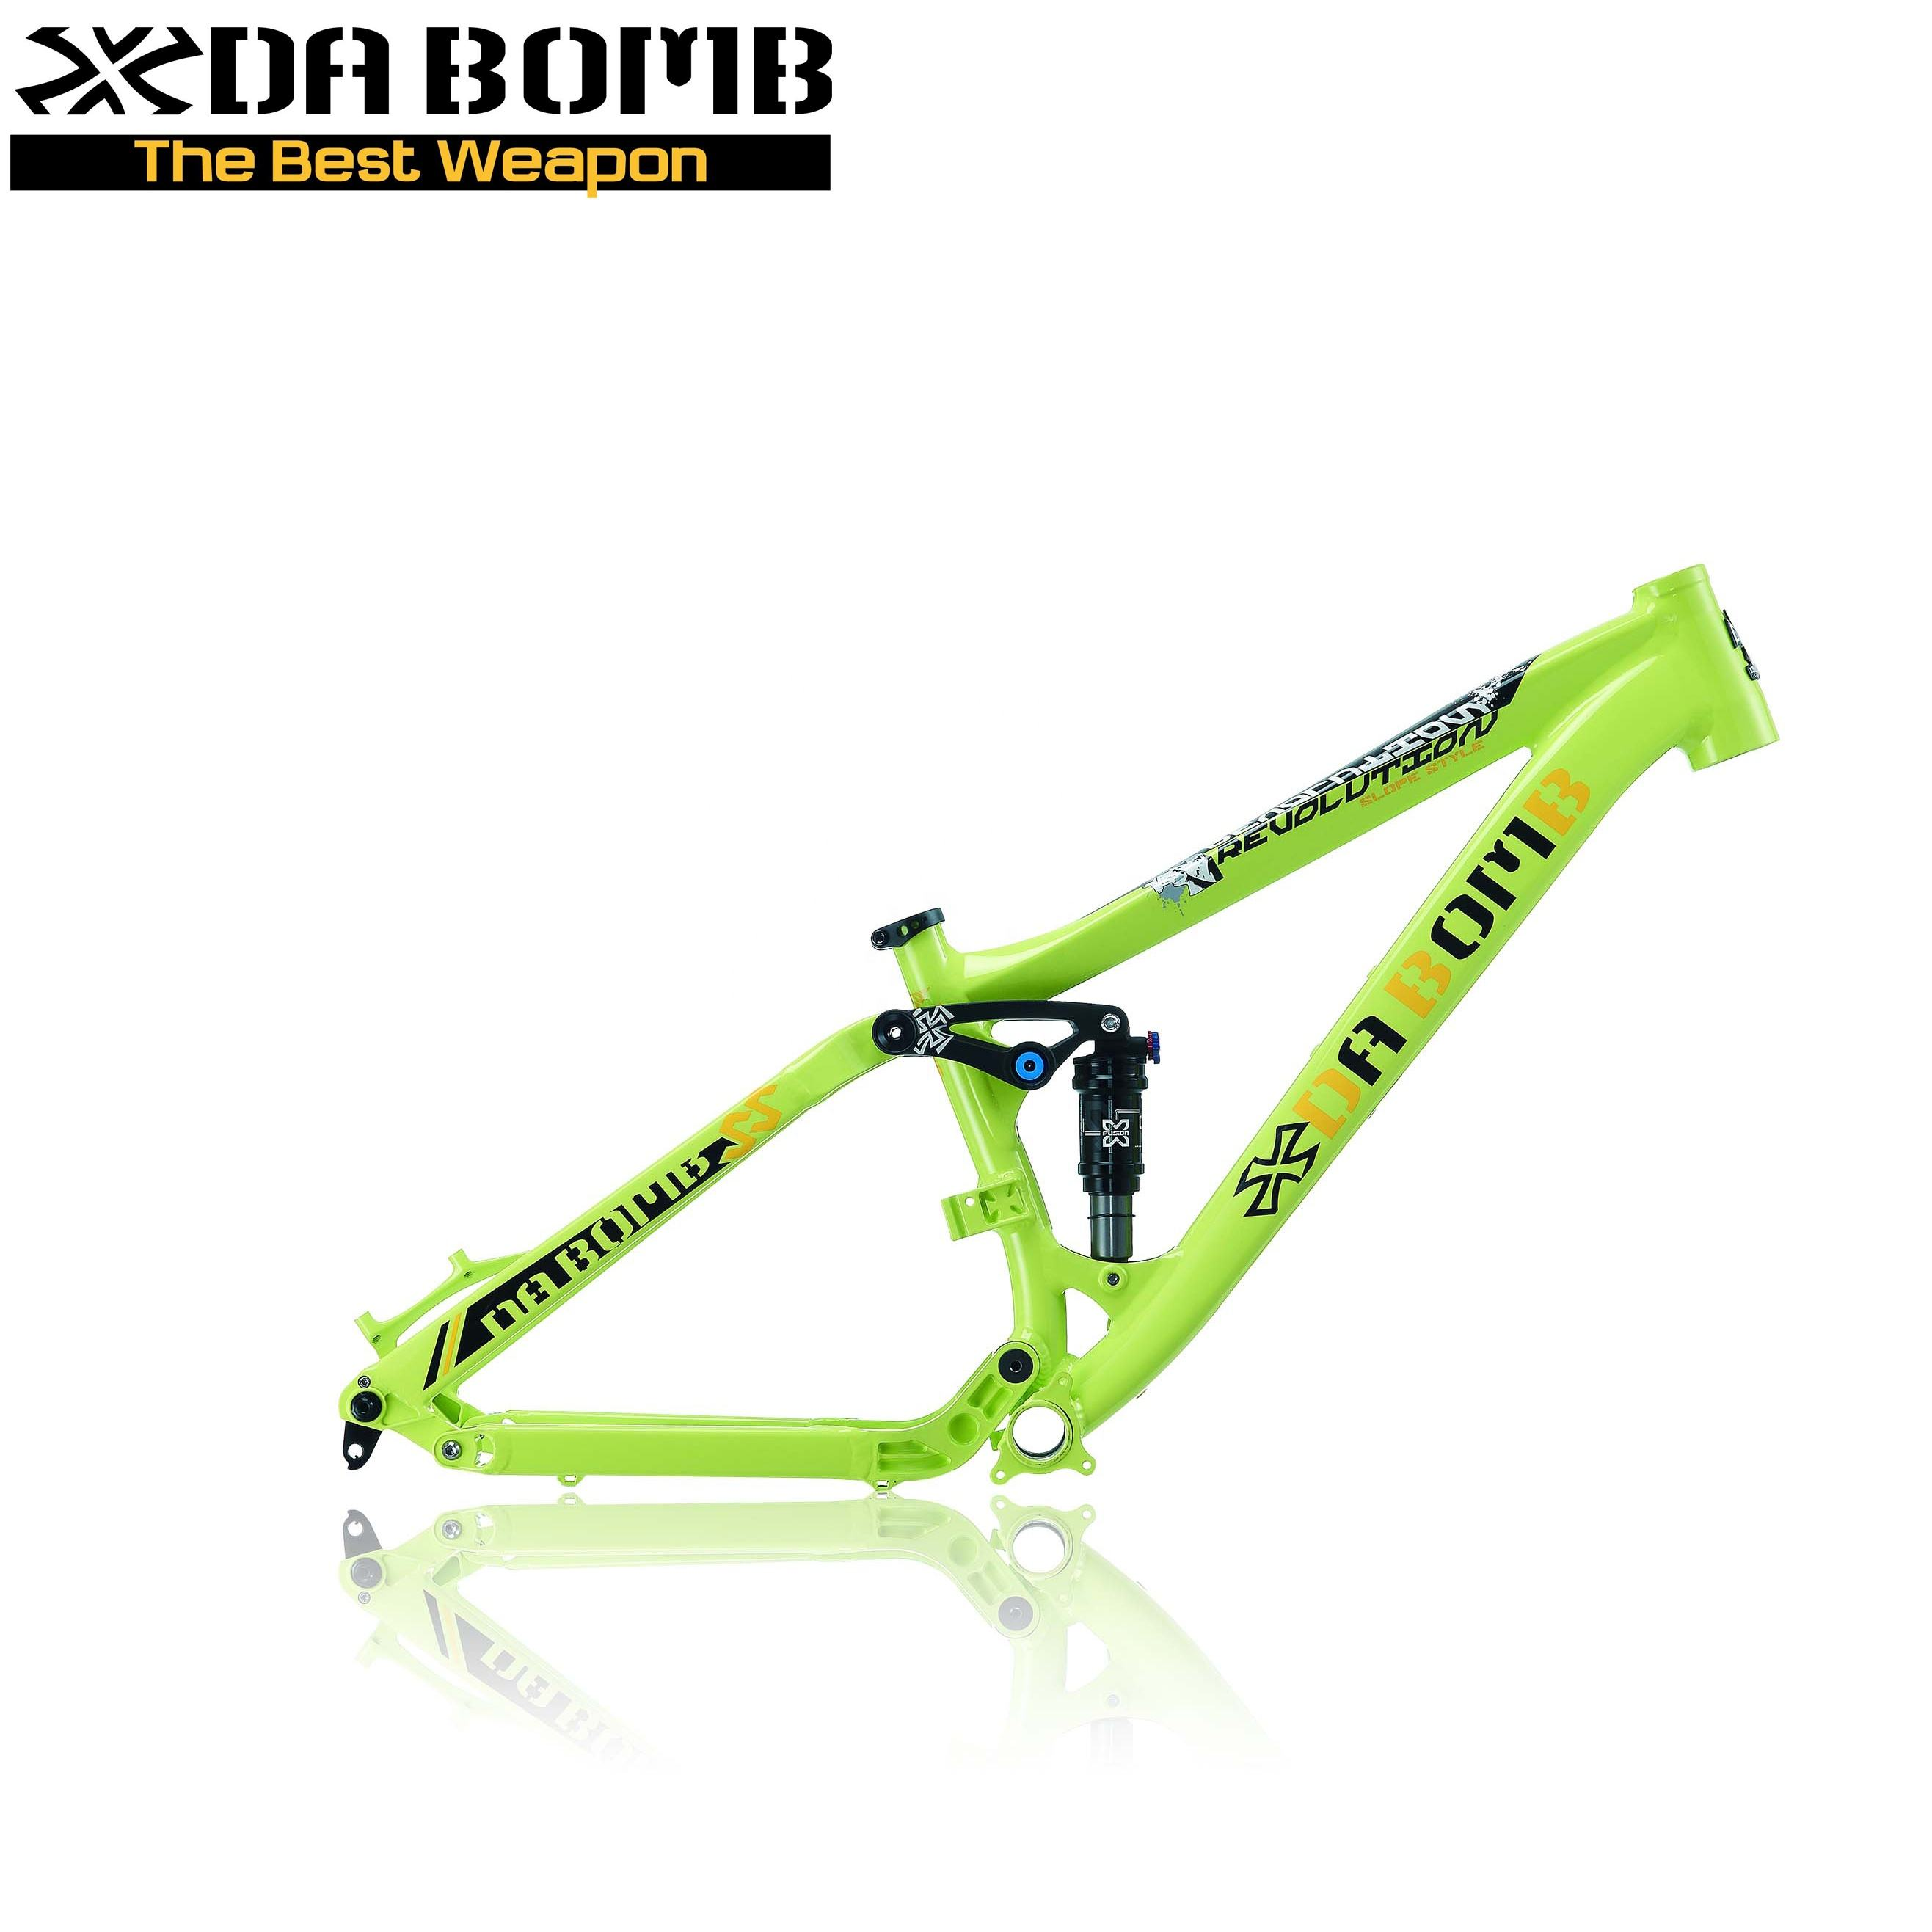 "DABOMB MTB 26"" Suspension Dirt Jump DJ Bike Frame"